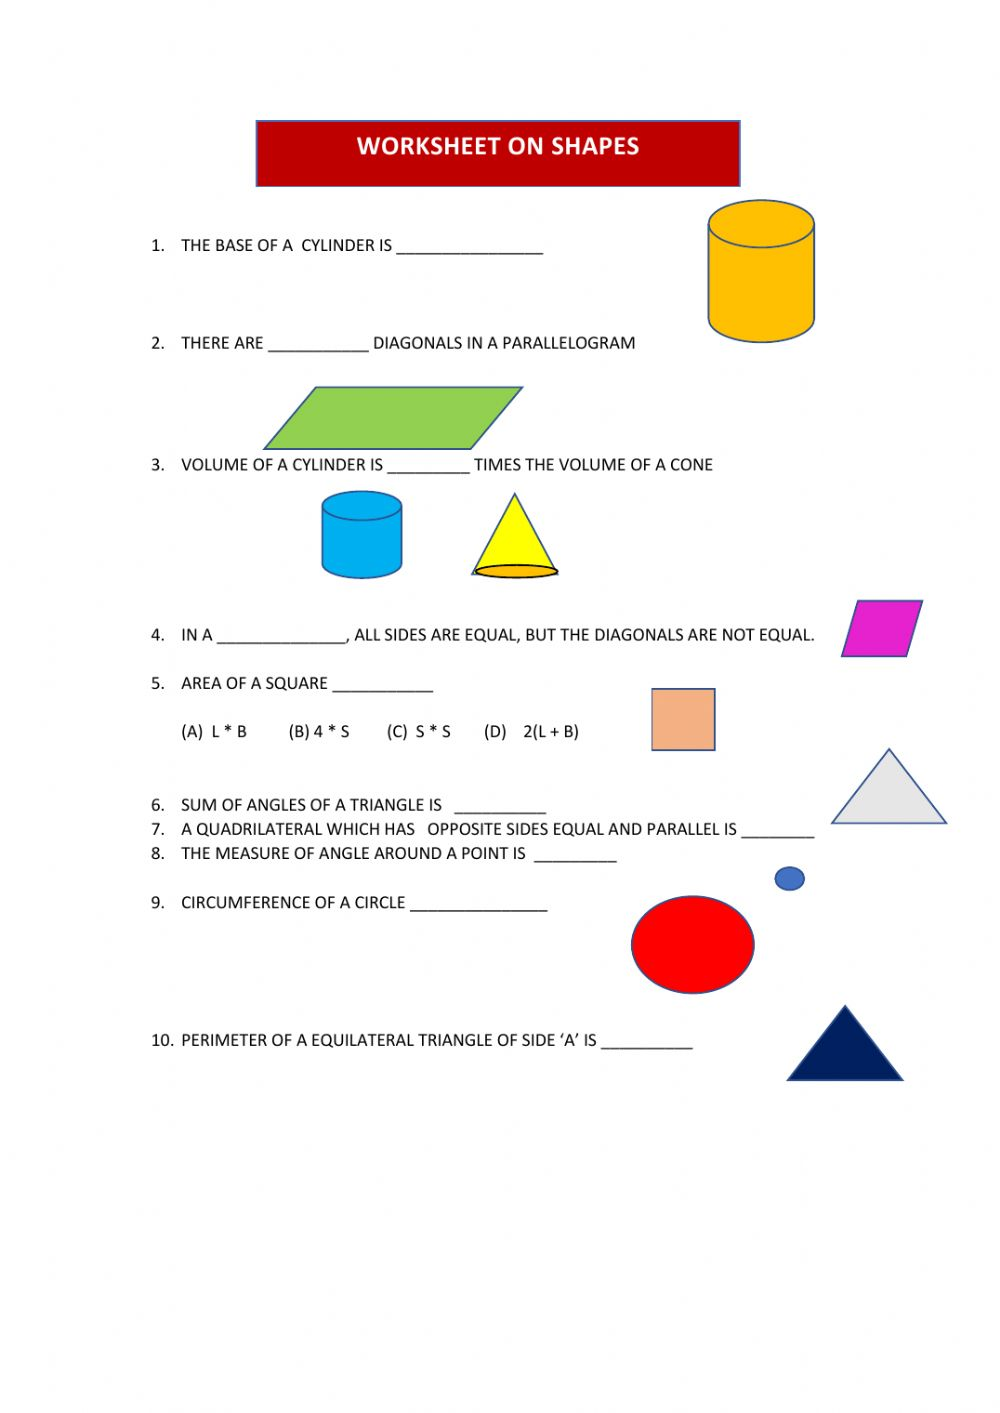 medium resolution of Shapes online exercise for 8TH